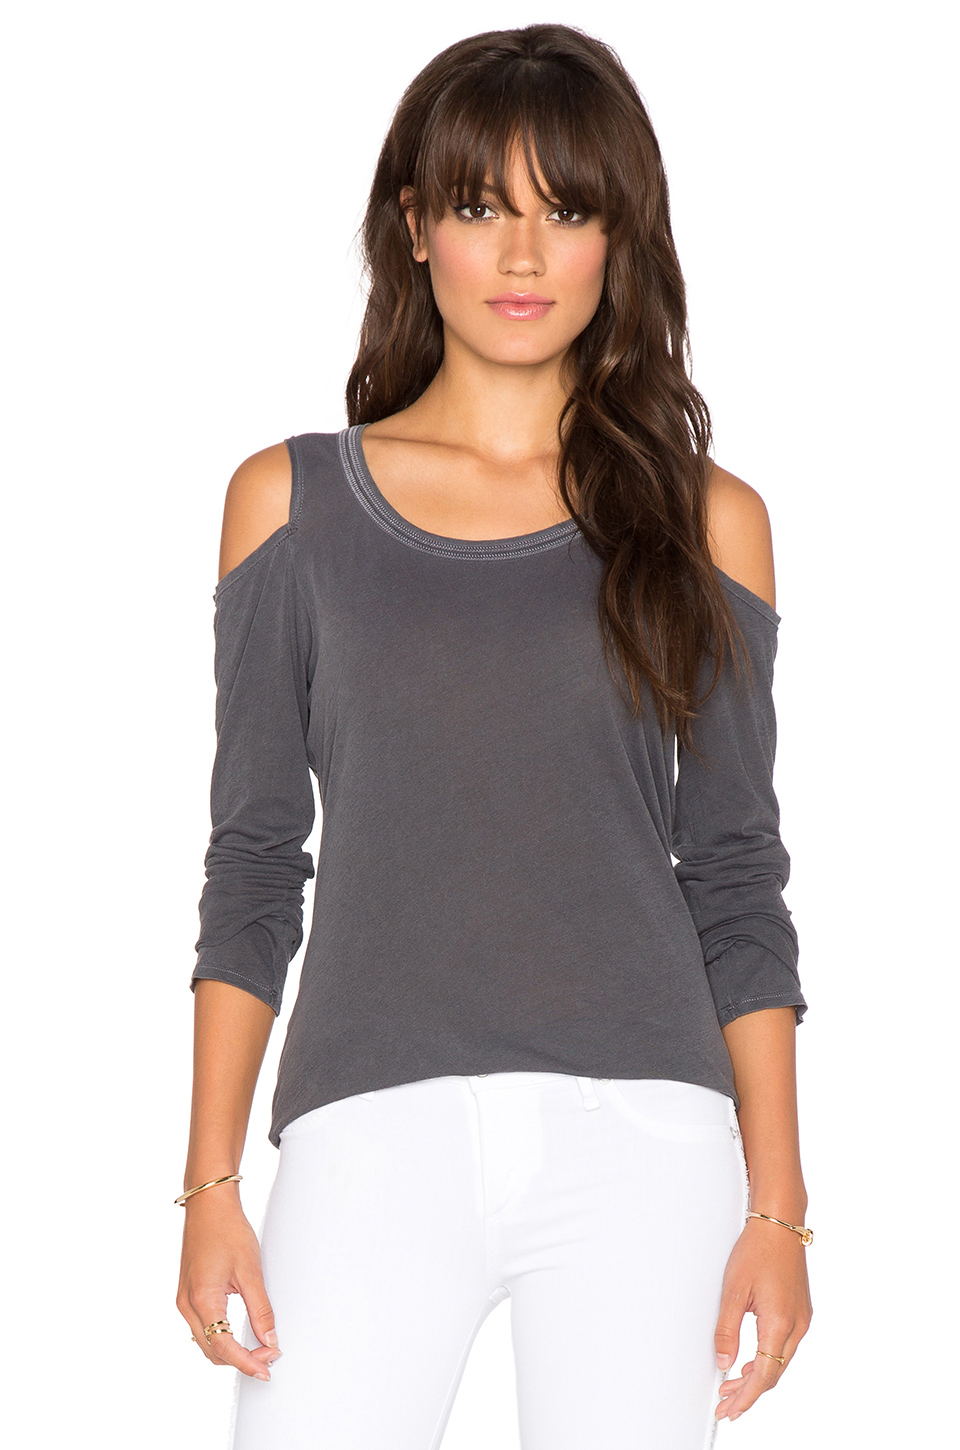 Boat Neck Shirts For Women